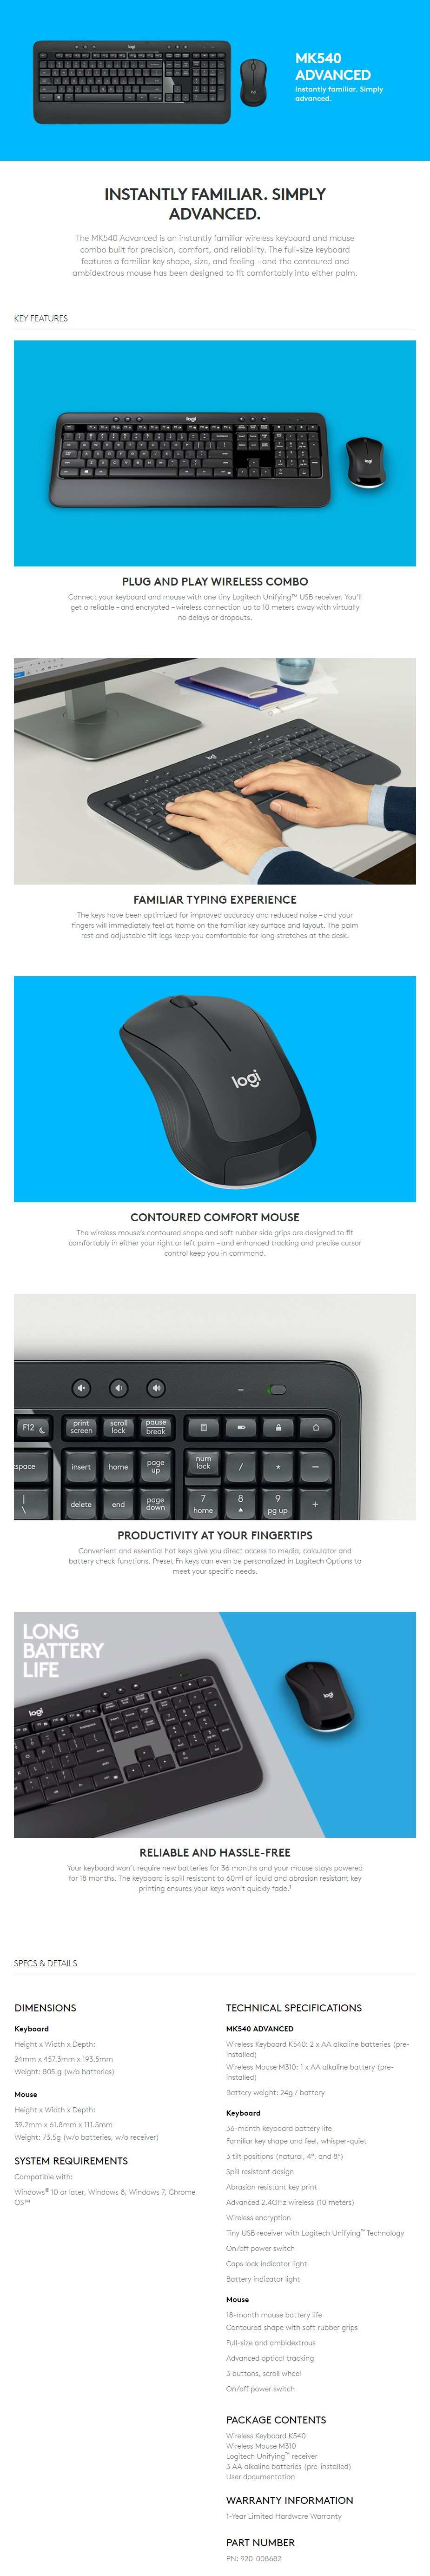 Logitech MK540 Advanced Wireless Keyboard and Mouse Combo - Overview 1